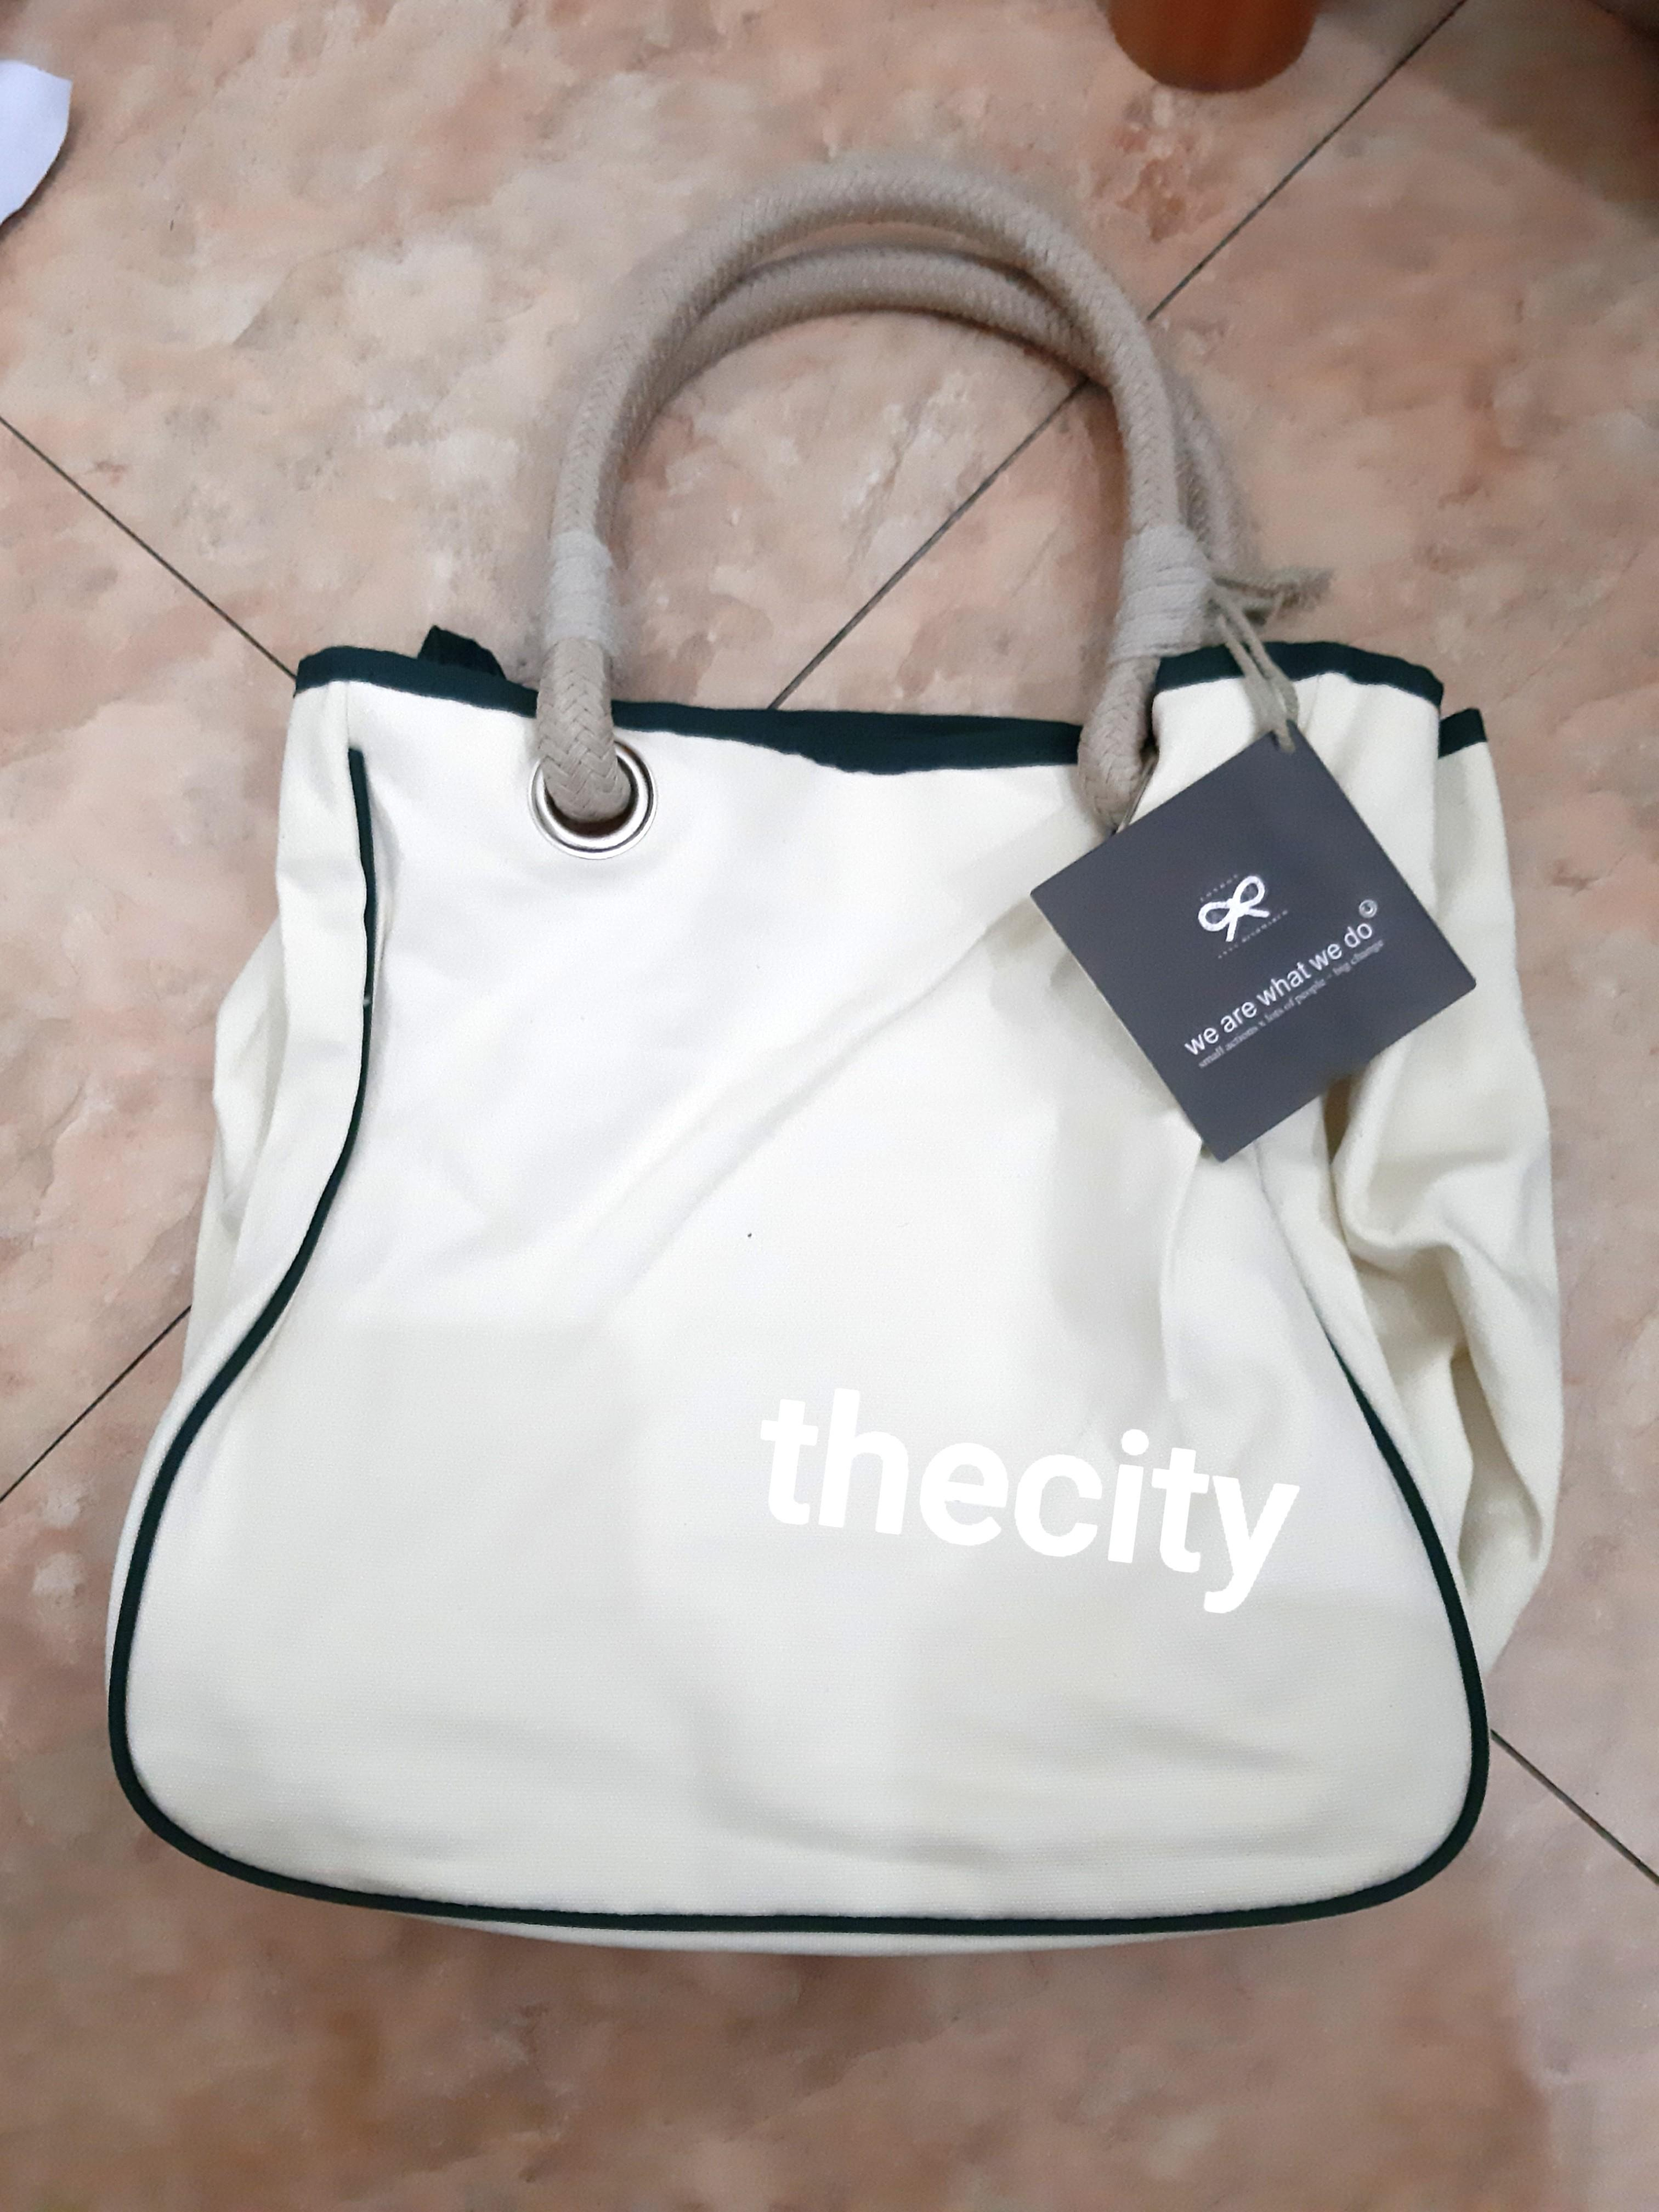 """BRAND NEW - AUTHENTIC ANYA HINDMARCH """"IM NOT A PLASTIC BAG"""" TOTE BAG - RARE GREEN FONT JAPAN EDITION - NEVER BEEN USED - PREORDER ITEM FROM JAPAN -"""